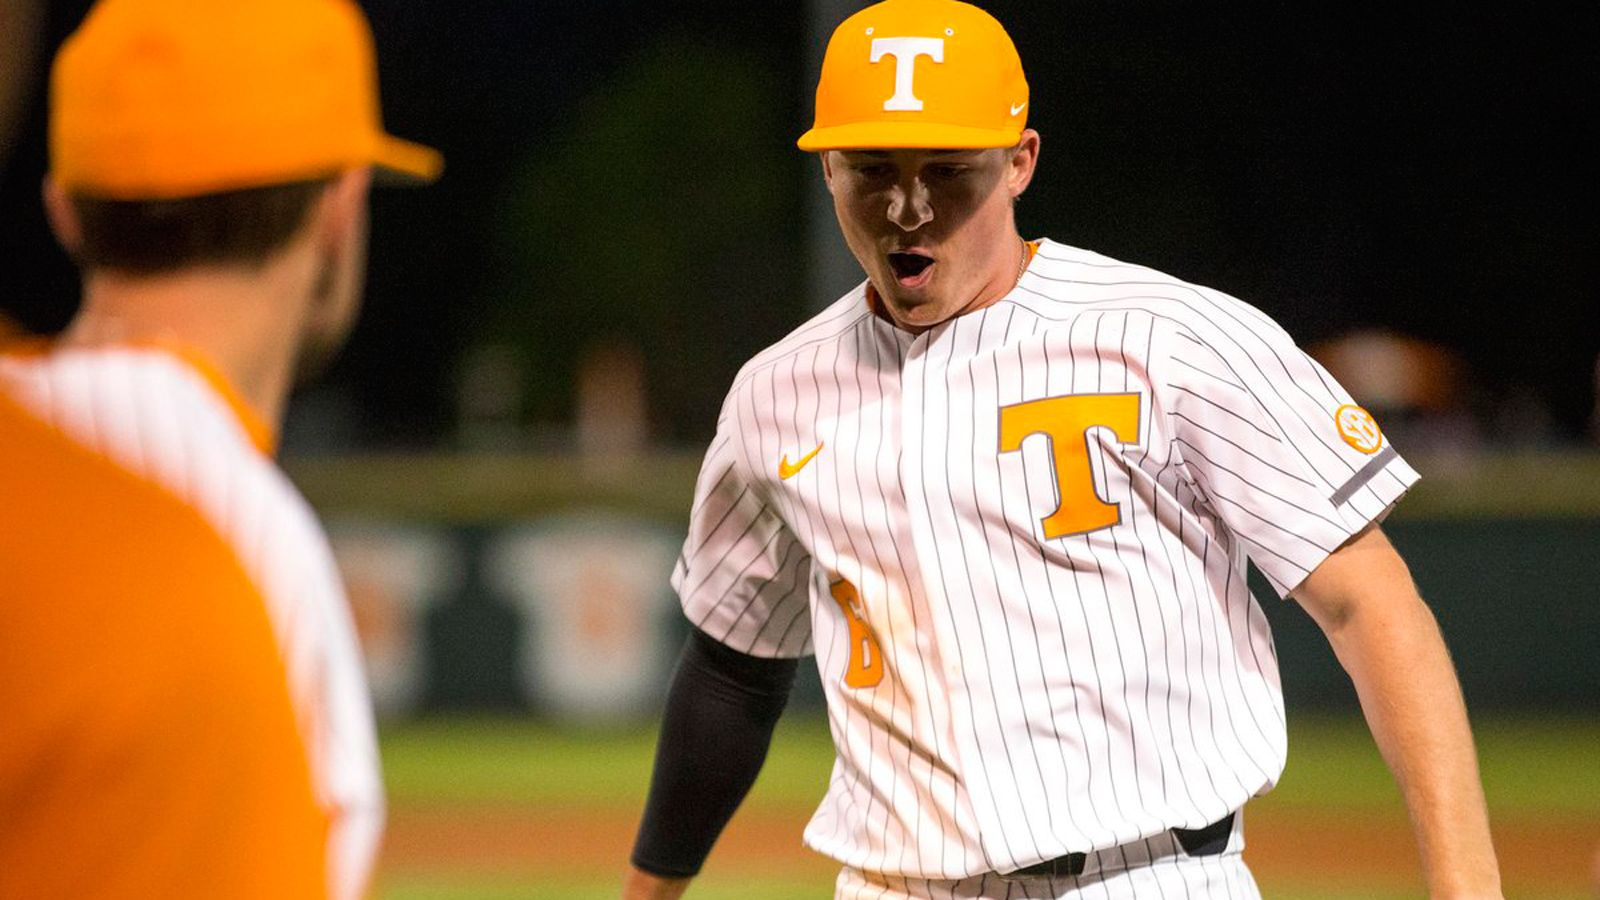 Vols take down No. 14 Aggies for series win